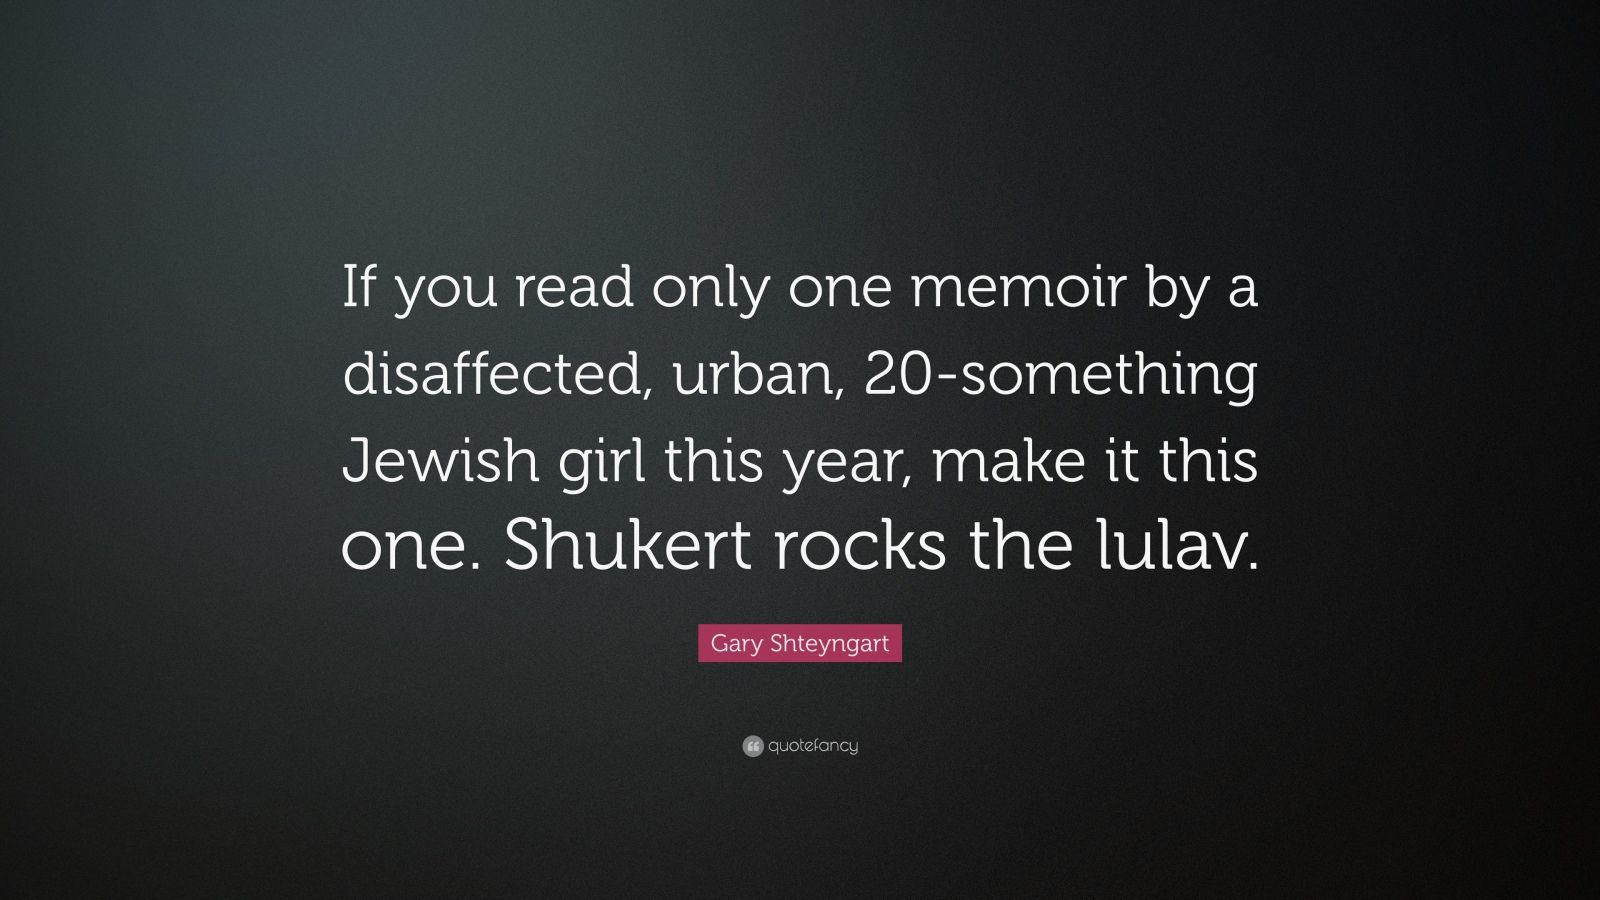 goose rock single jewish girls 14 things every guy should know about swedish girls roosh valizadeh and they rock the if prostitutes take care of single men who must have sex.